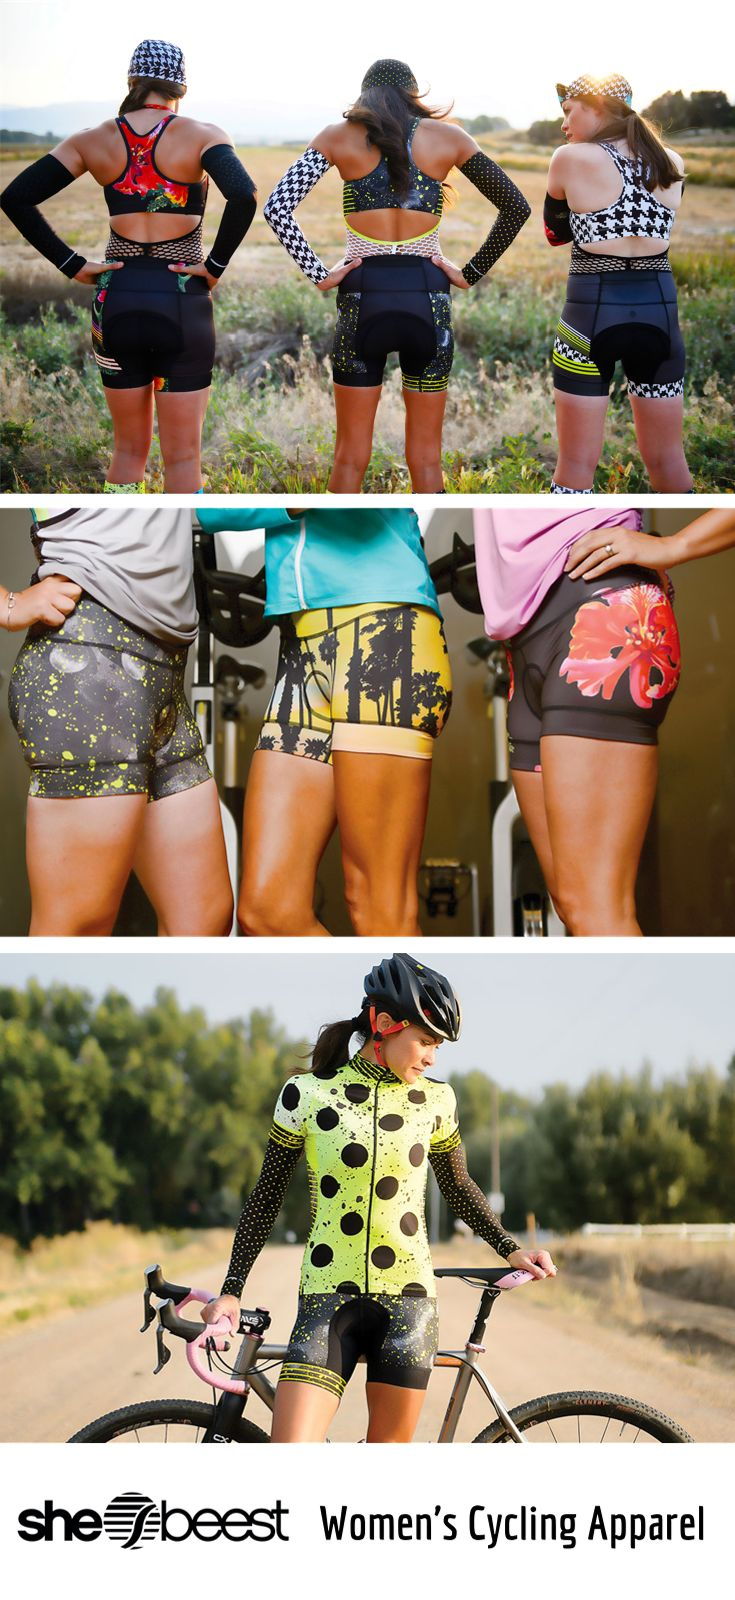 FINALLY women's cycling clothing that looks AND feels great! Our women's cycling jerseys, cycling shorts, capris, and pants are perfect for indoor or outdoor cycling! The bold patterns and designs will be sure you stand out in all the right ways!